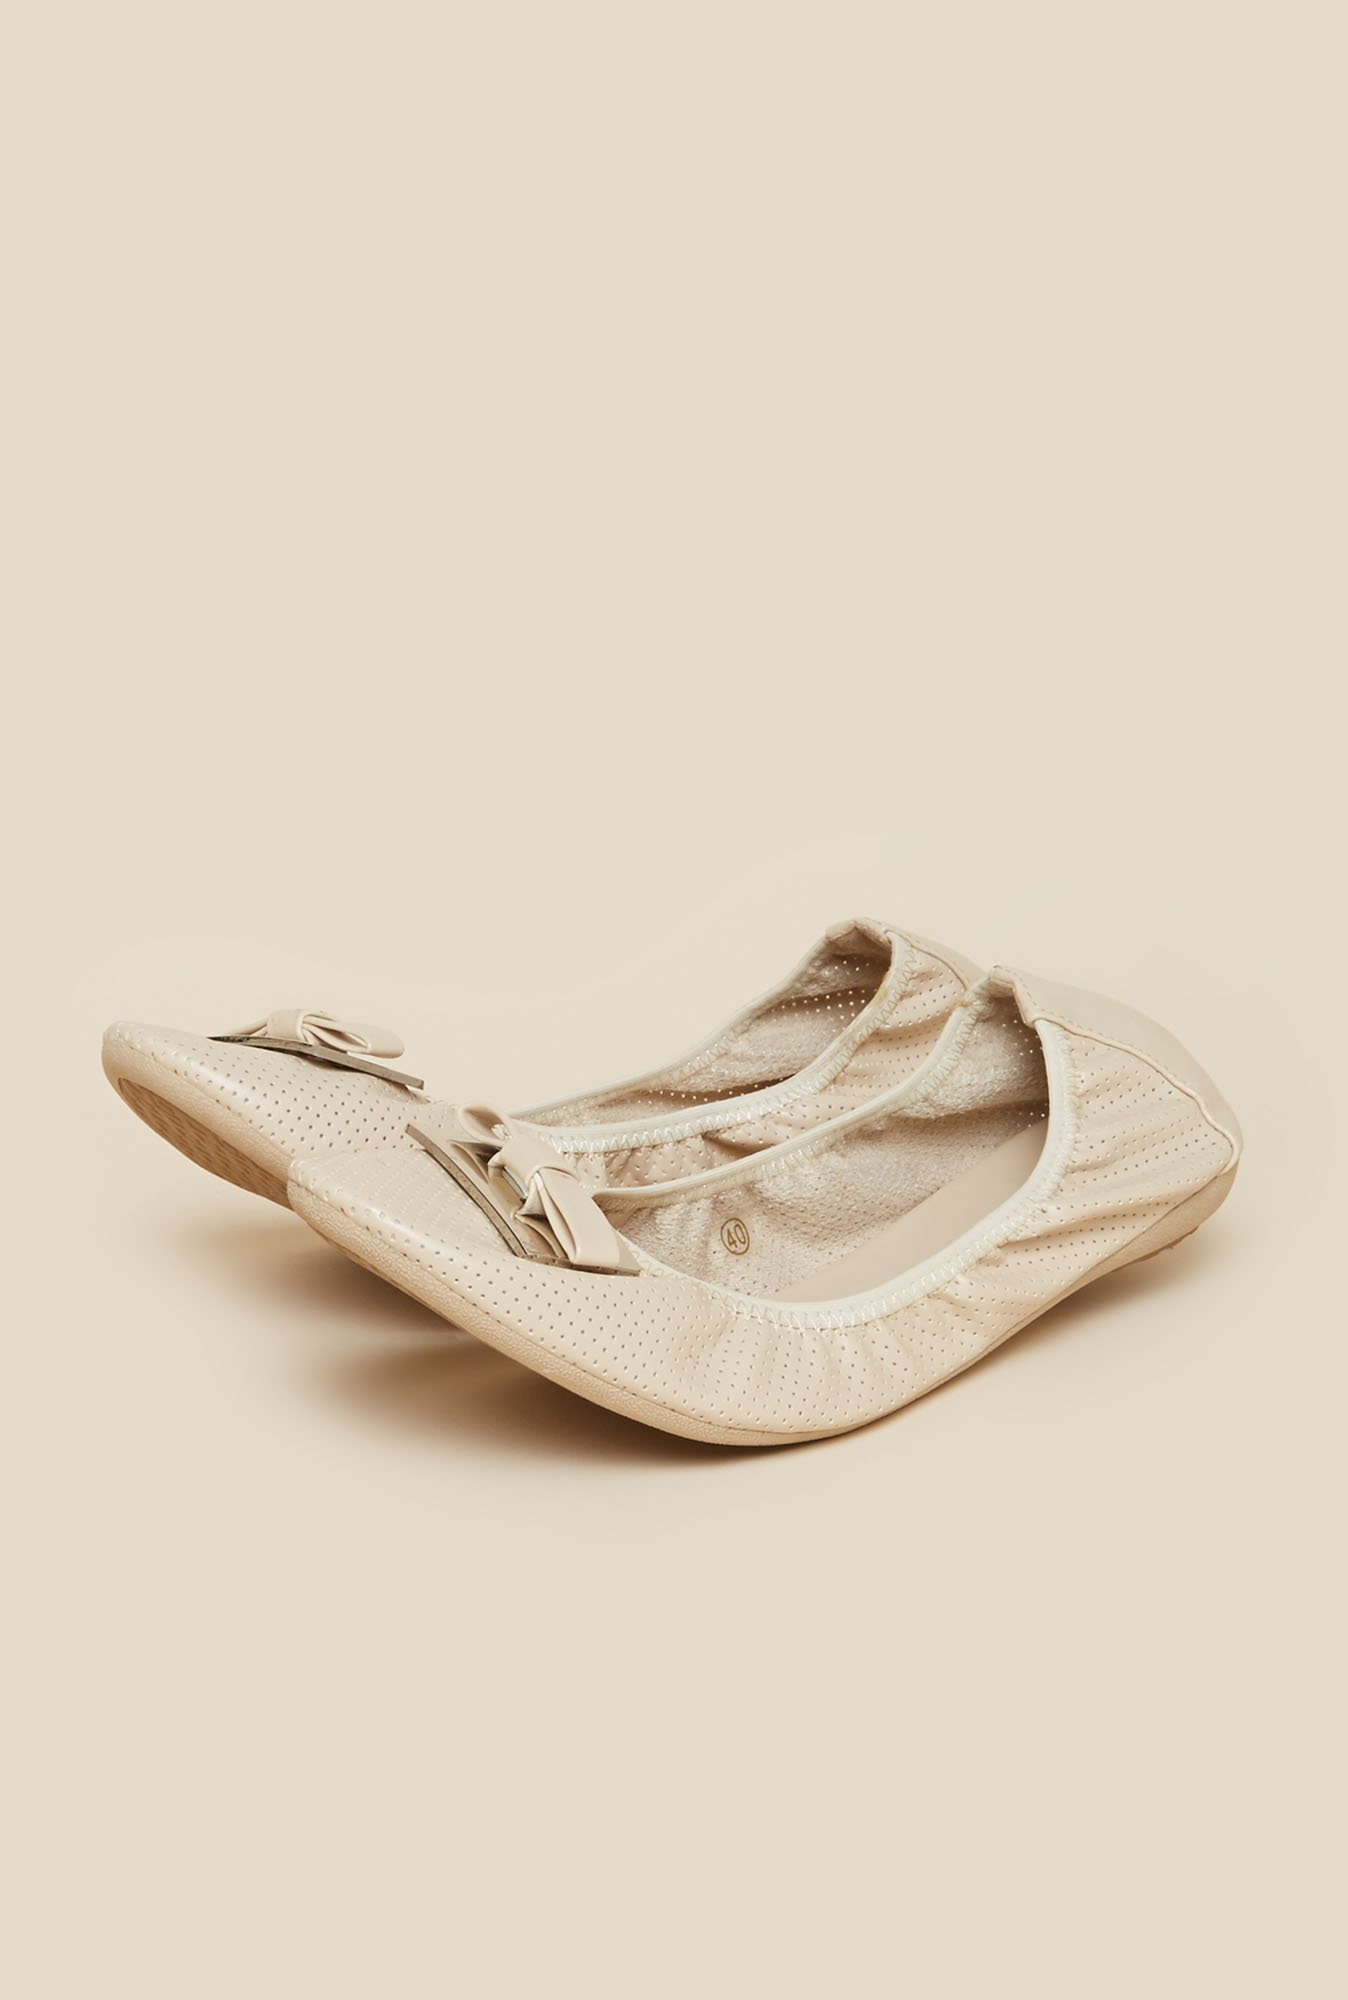 Metro Beige Ballerina Shoes